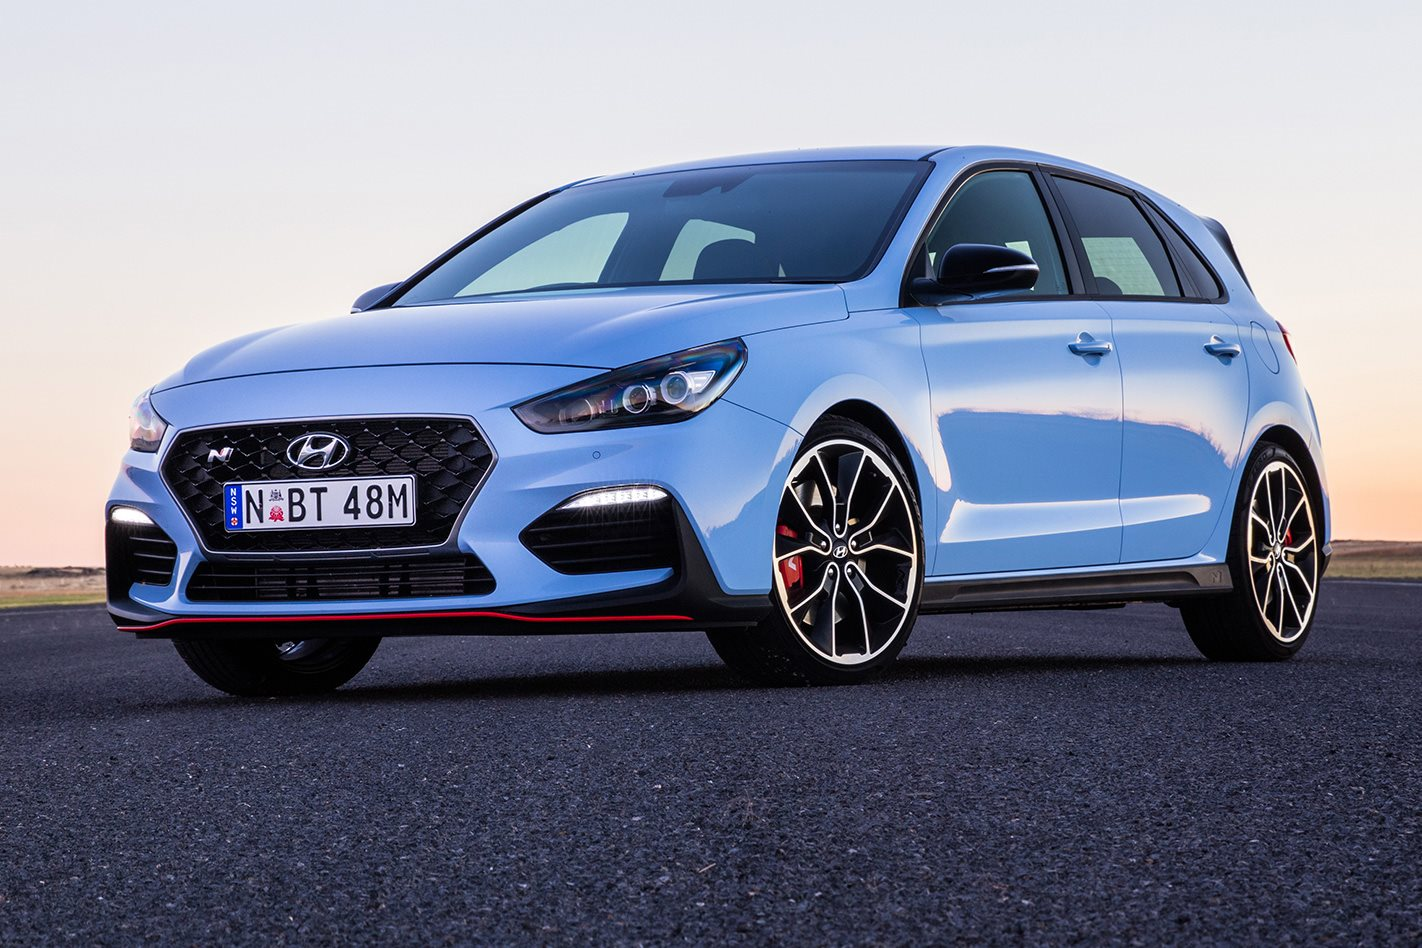 2018 Volkswagen Gti Review >> 2018 Hyundai i30 N review